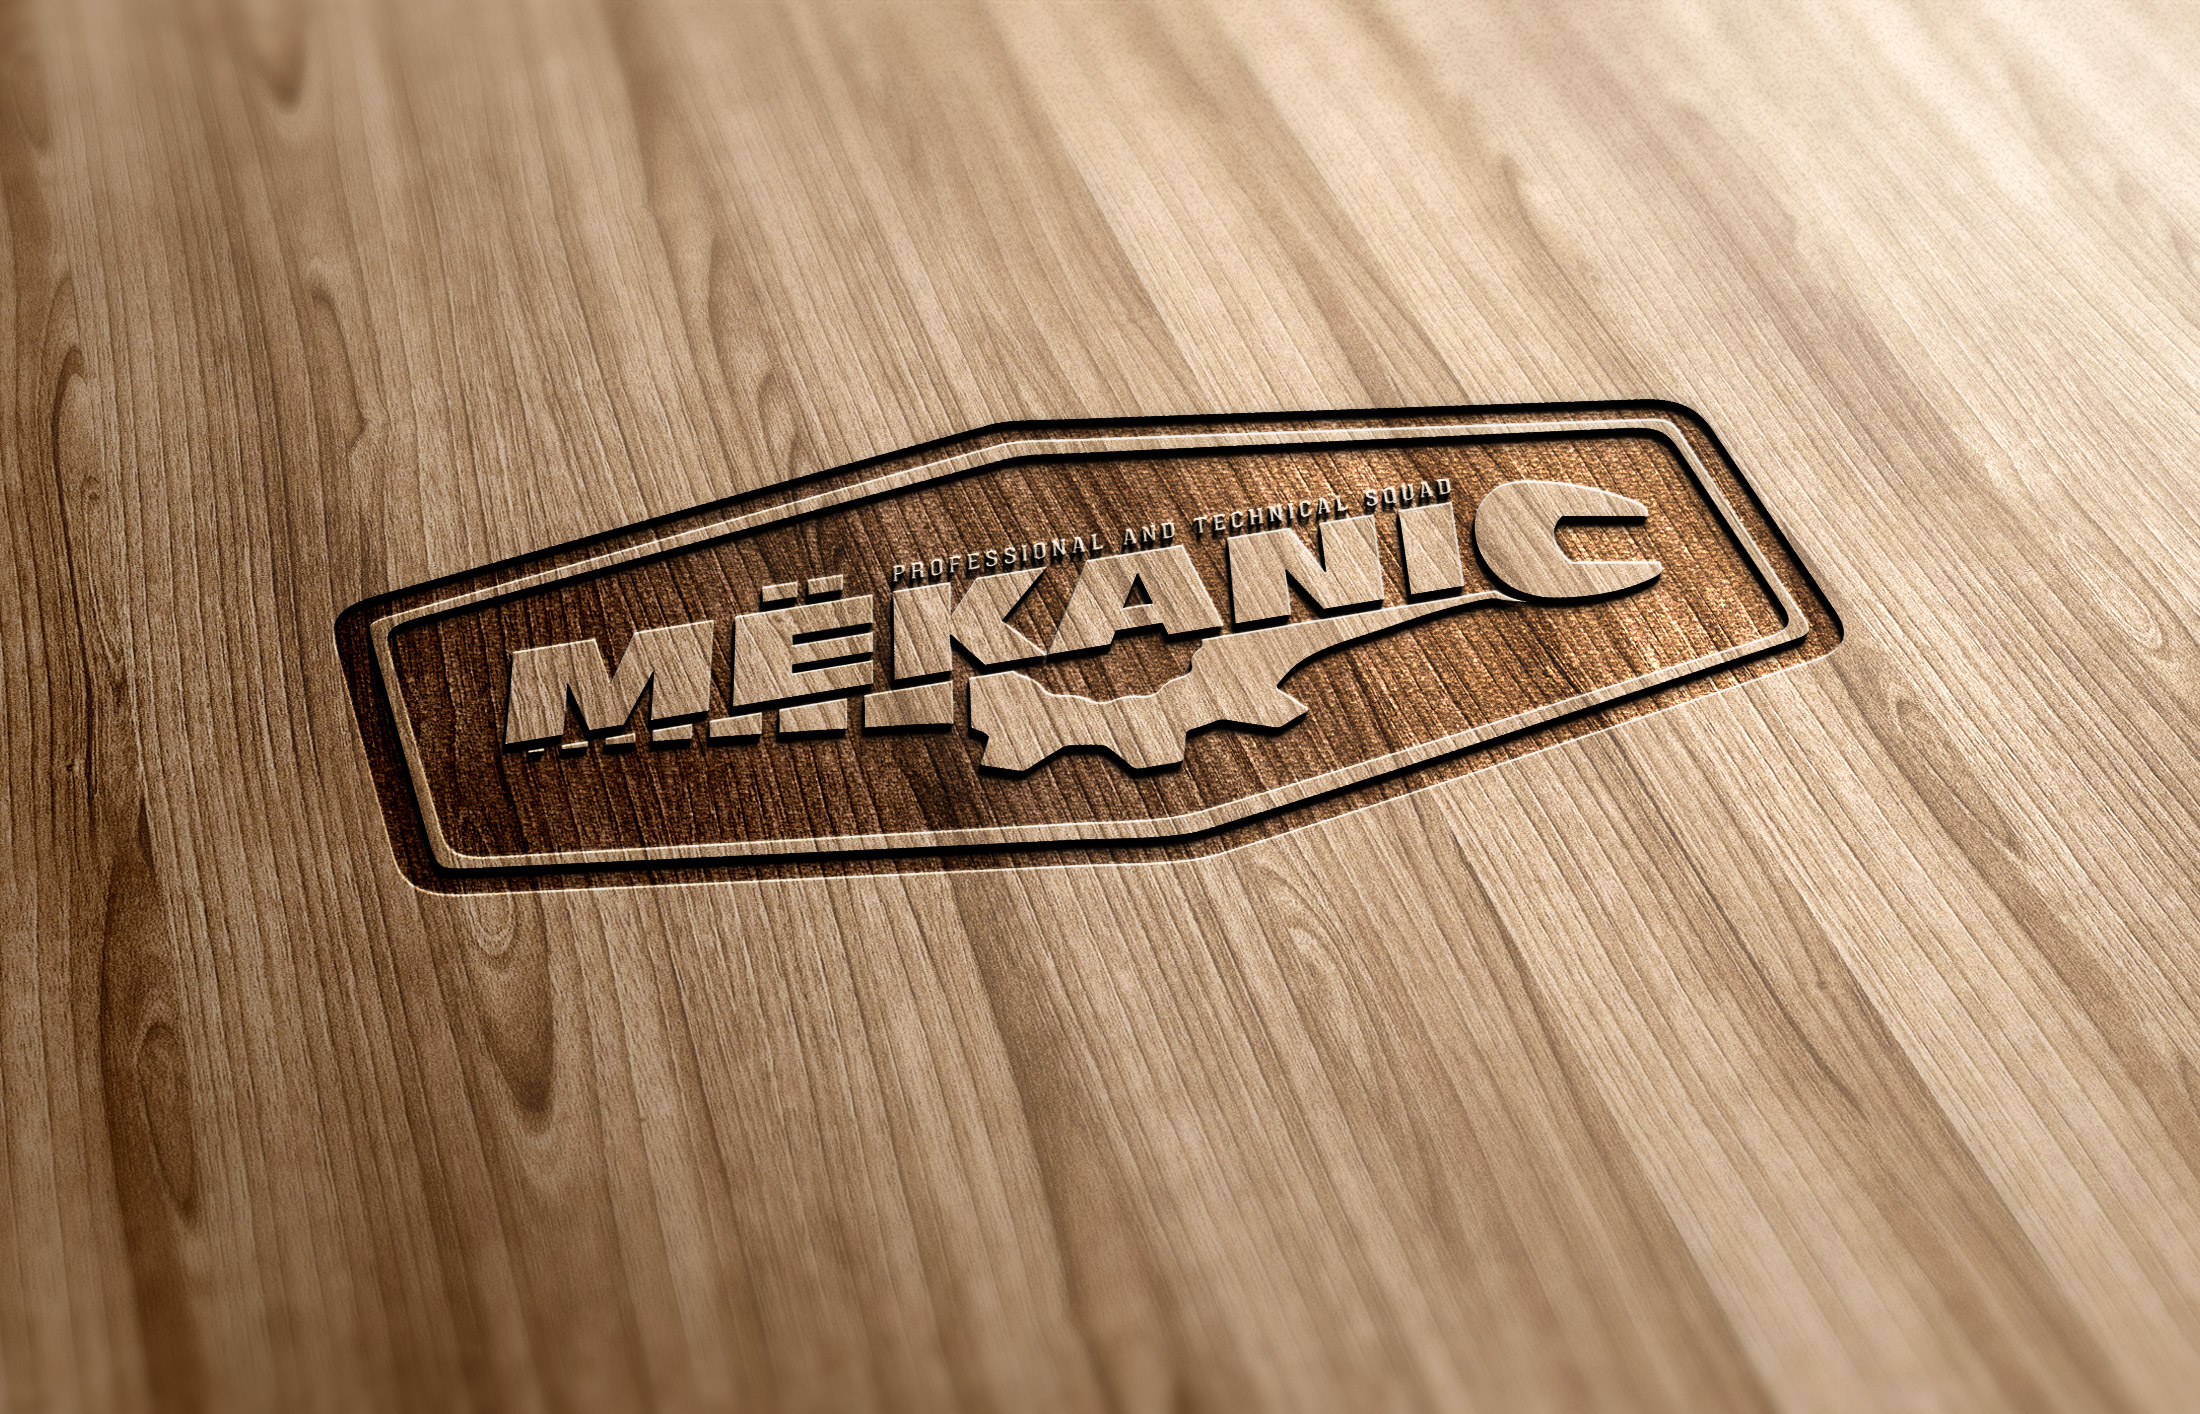 Logo Design by olii - Entry No. 251 in the Logo Design Contest Creative Logo Design for MËKANIC - Professional and technical squad.